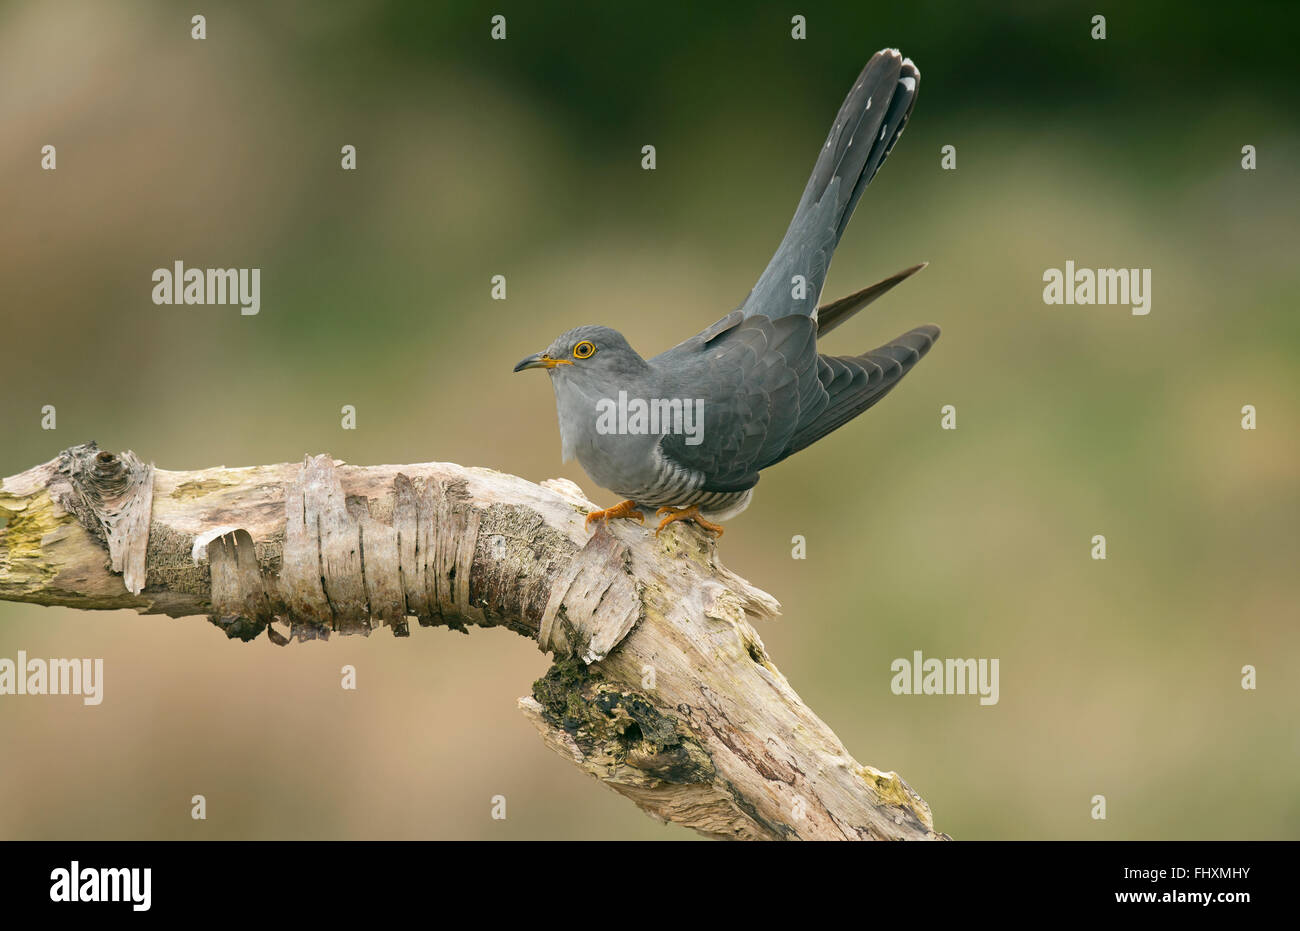 Cuckoo male perched on branch - Stock Image